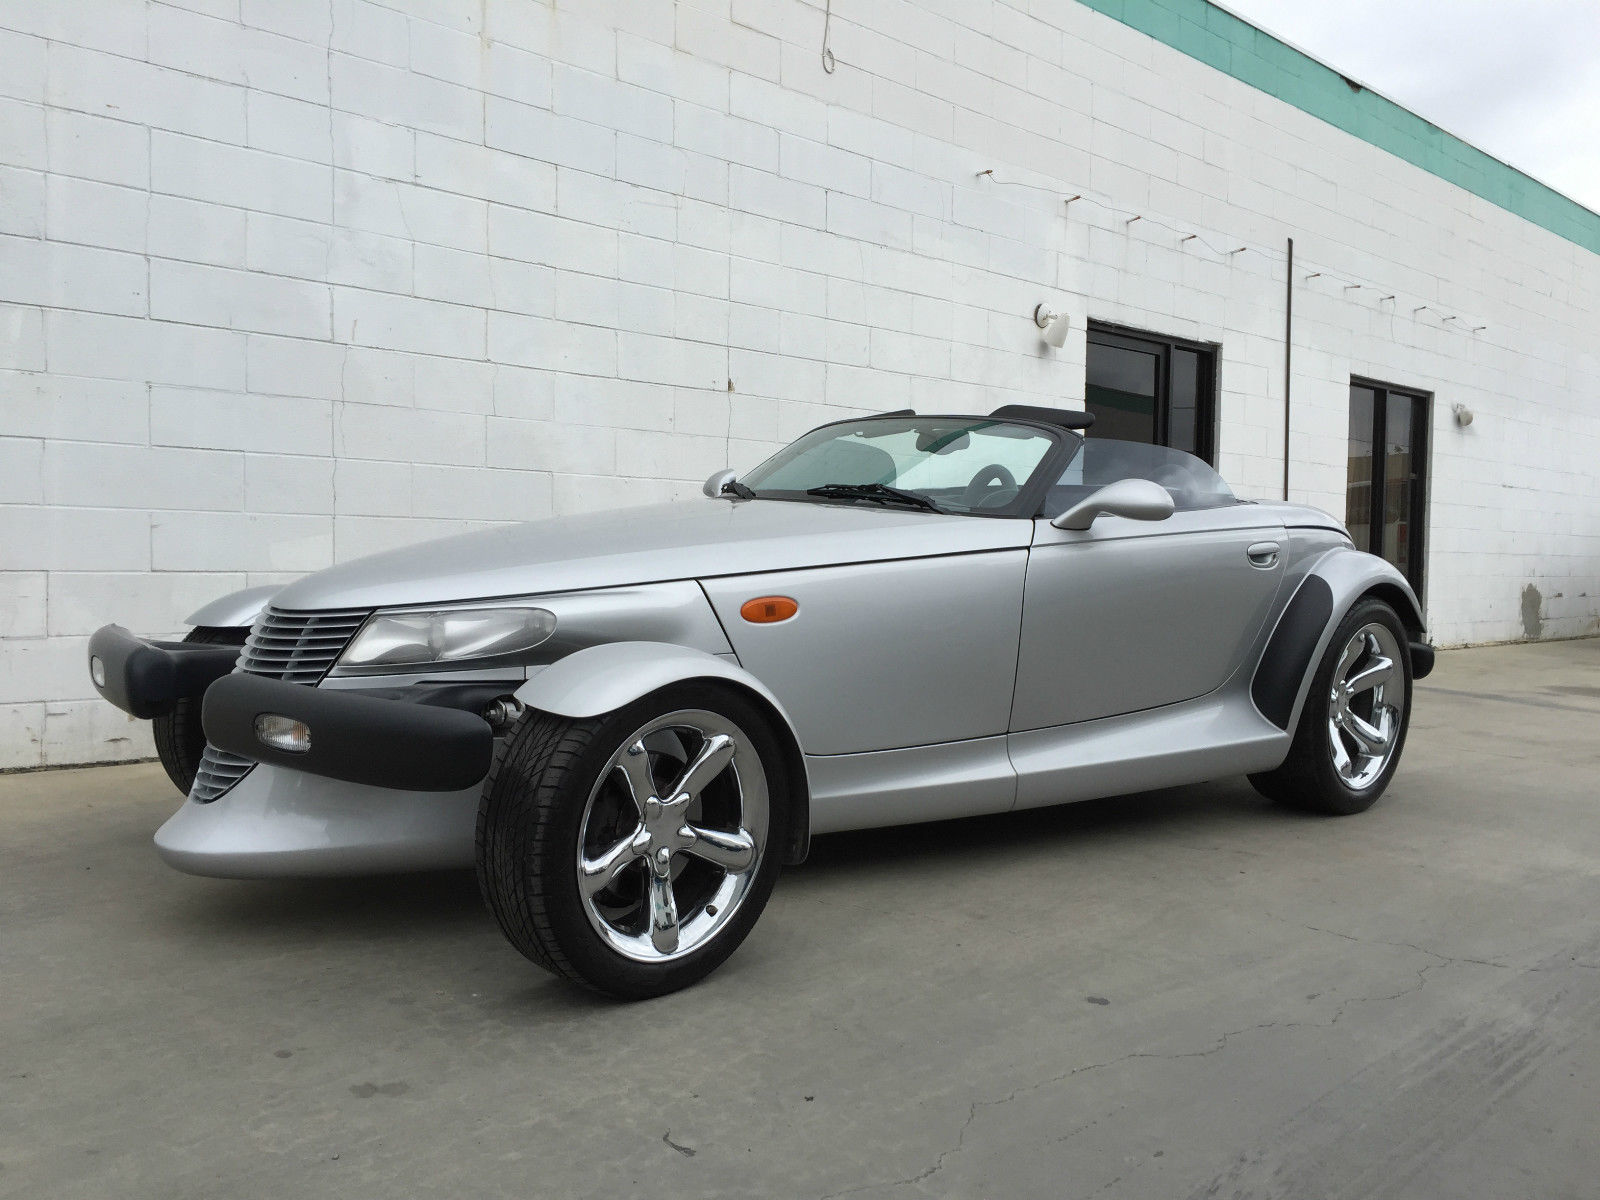 2001 Plymouth Prowler For Sale